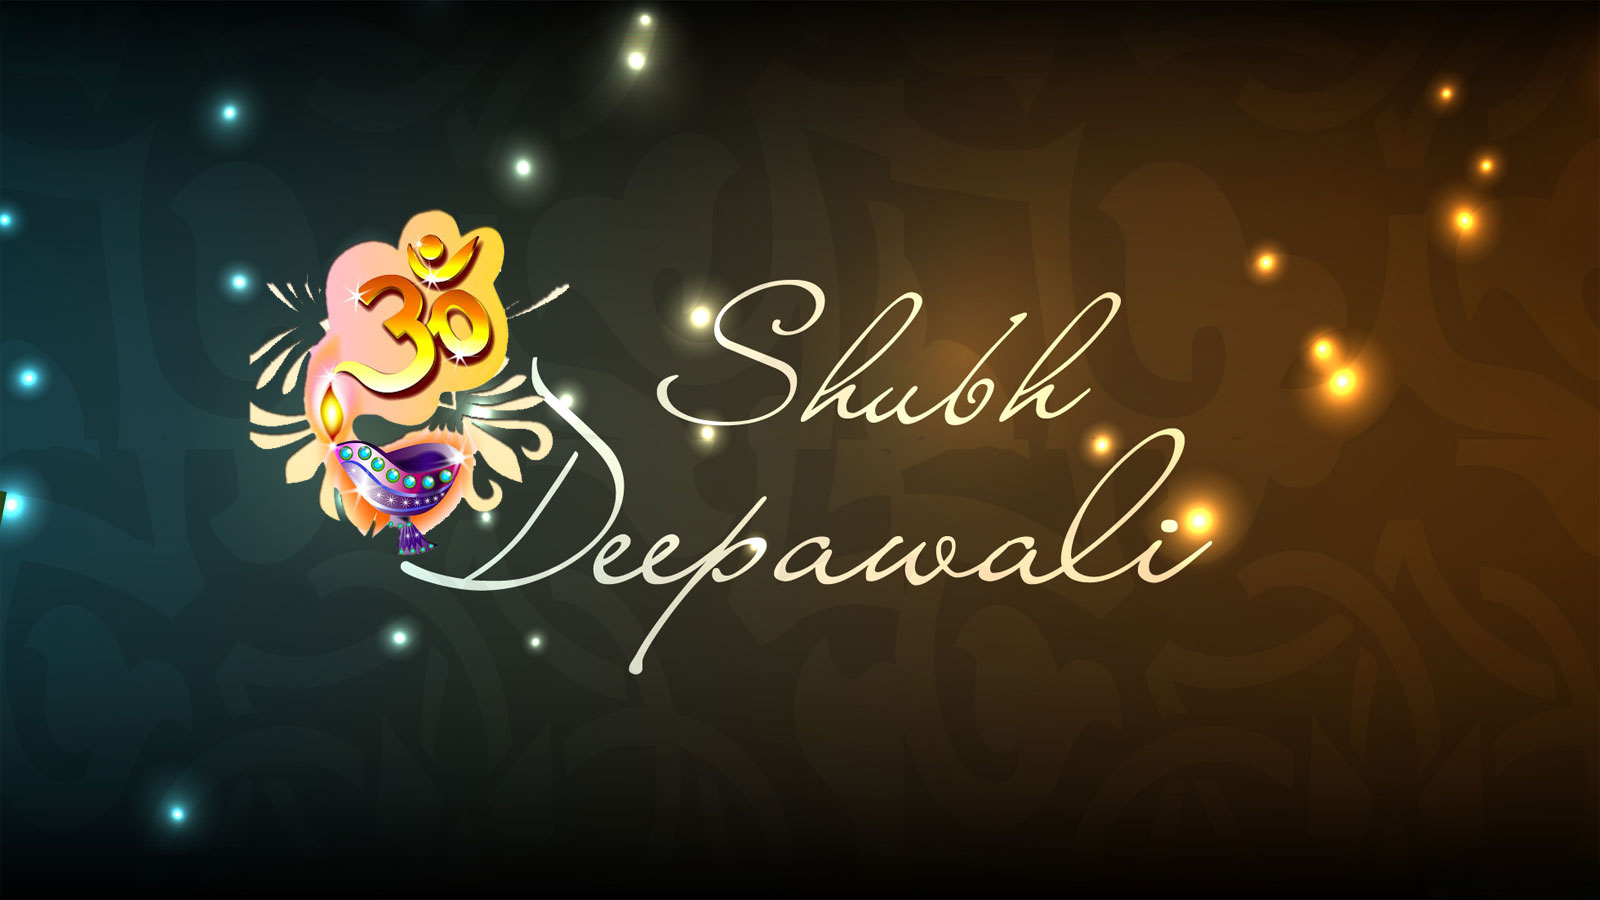 Top Wallpaper Love Diwali - 18  Image_971099.jpg?fit\u003d1600%2C900